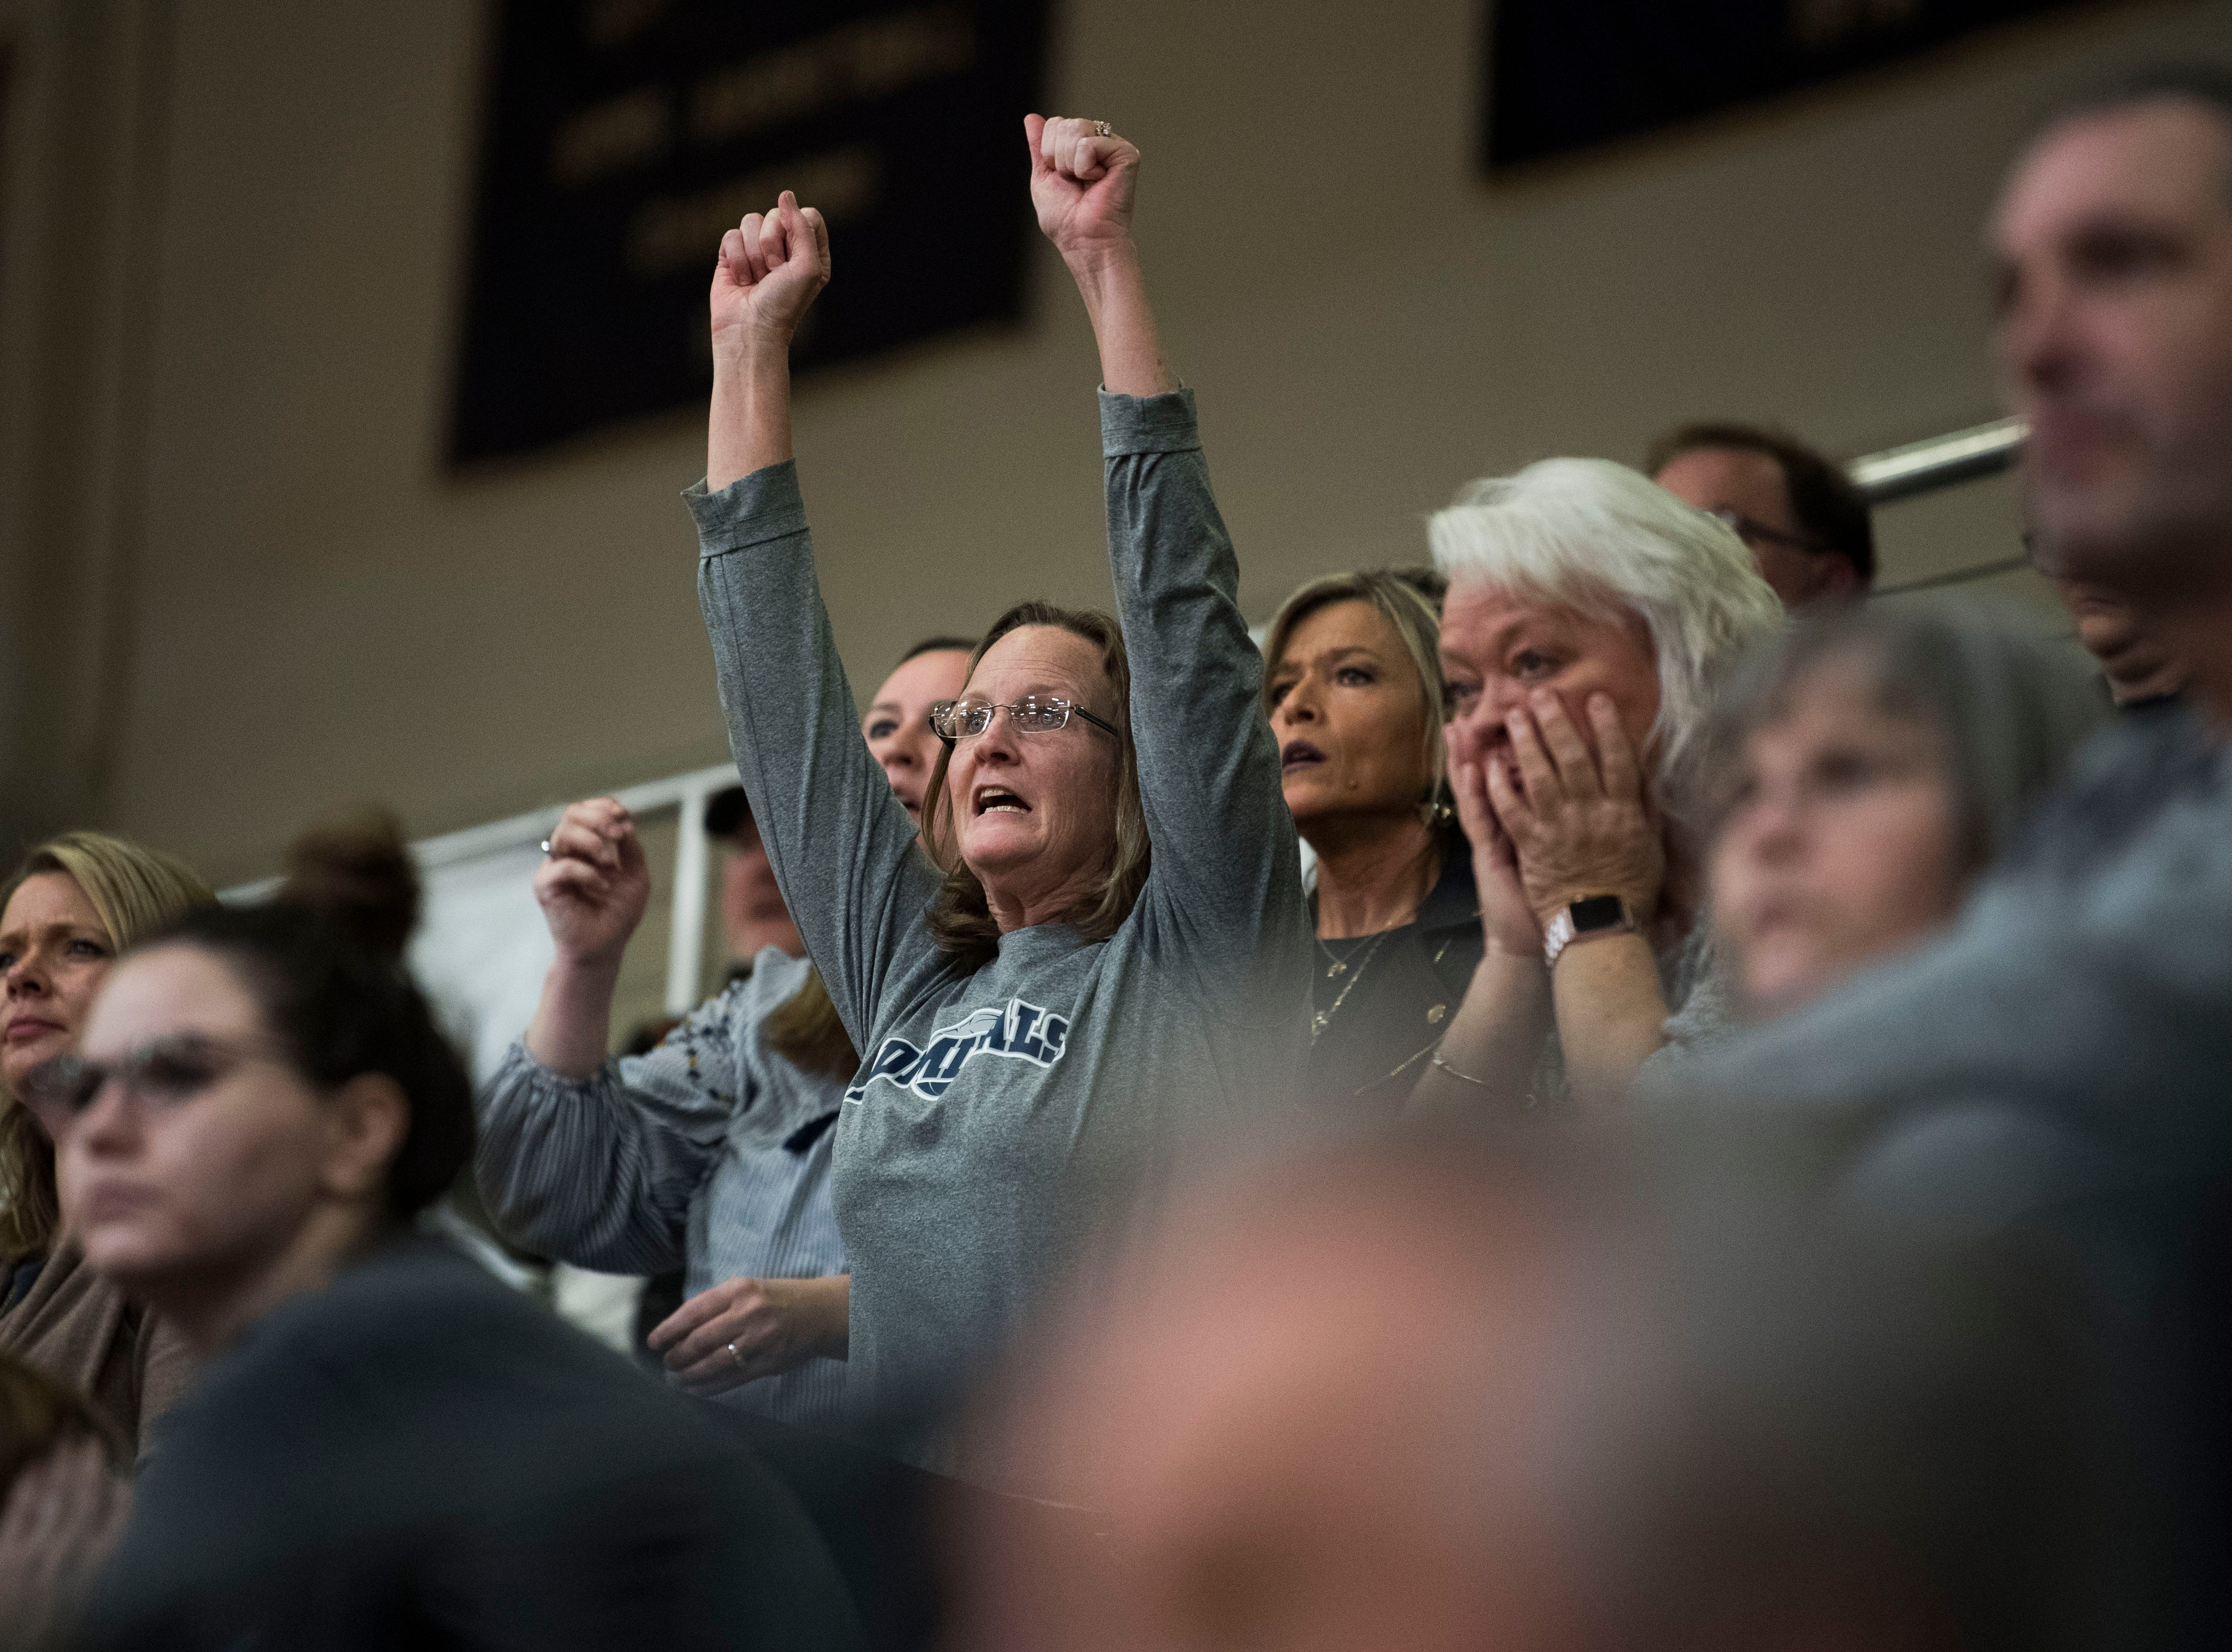 A Farragut fan celebrates during a high school basketball game between Maryville and Farragut at Farragut, Friday, Jan. 11, 2019.